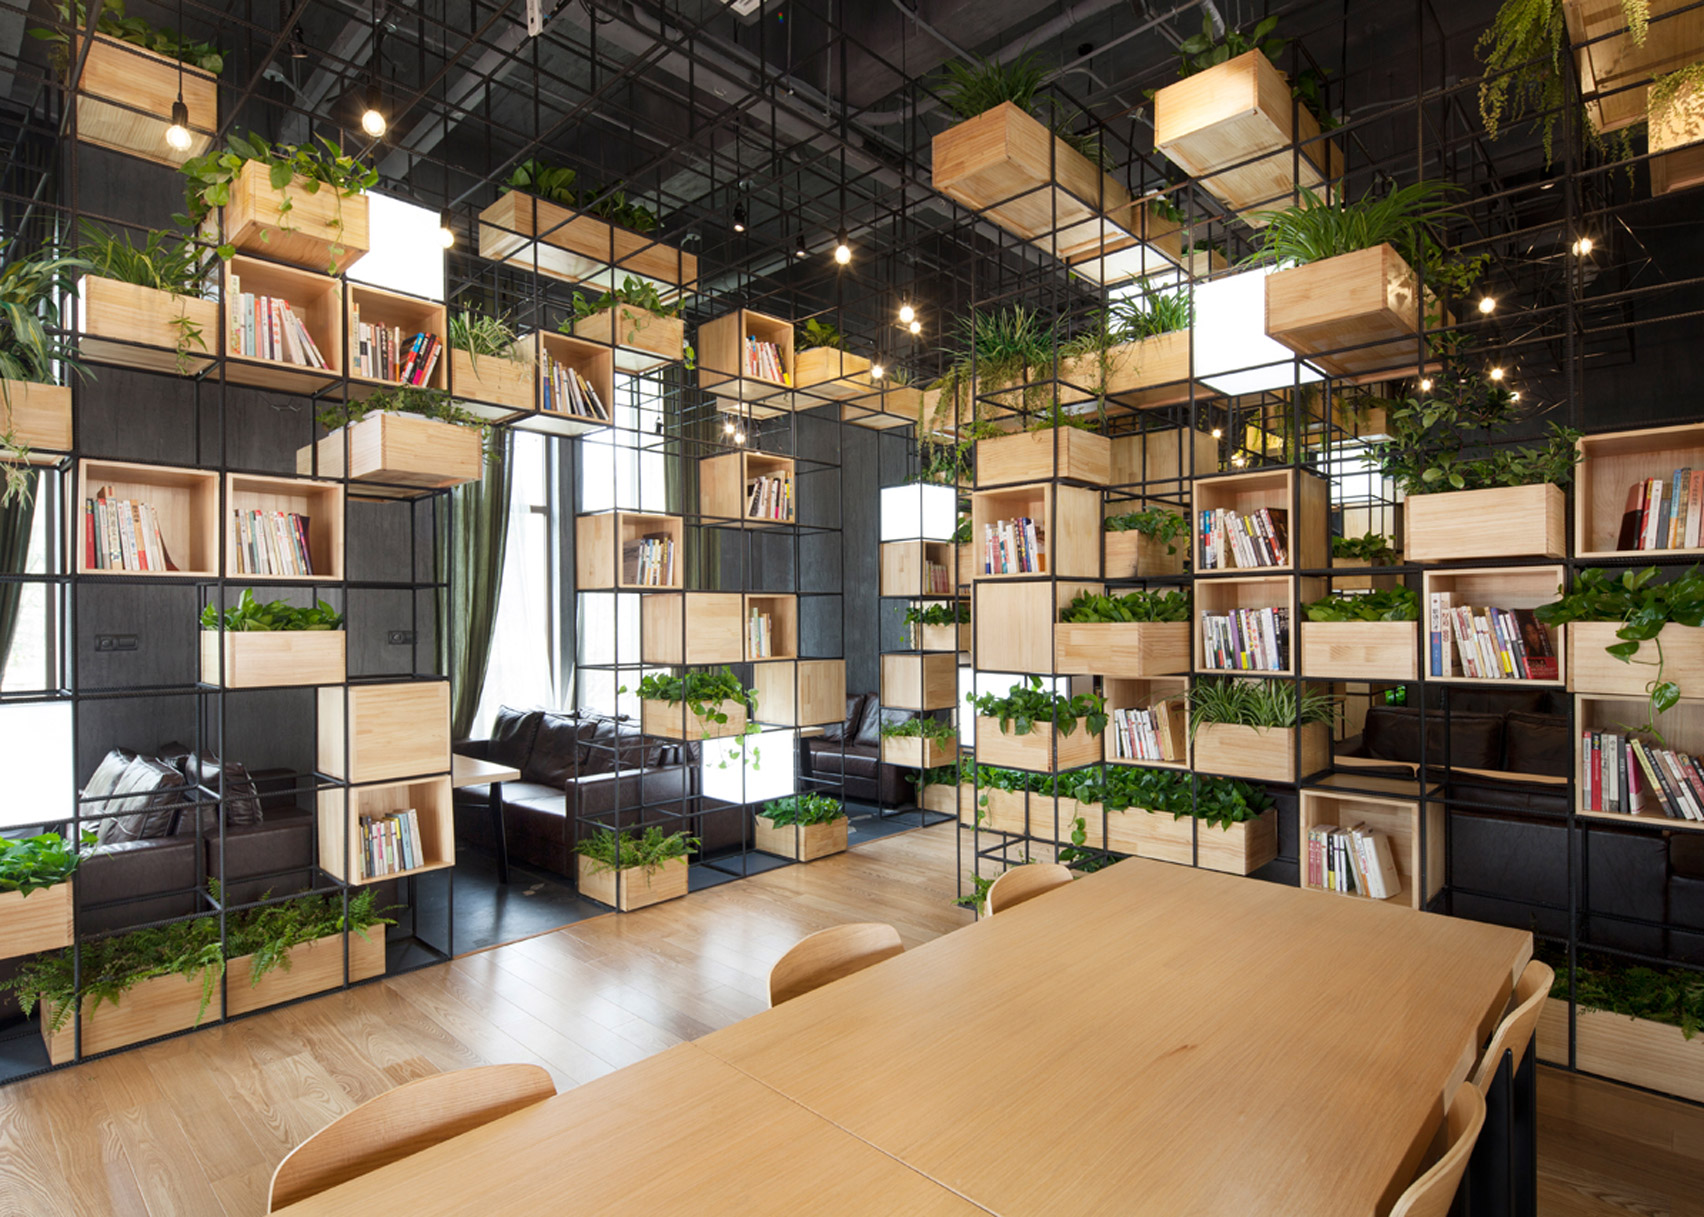 10 of the most efficient shelving designs that are ideal for